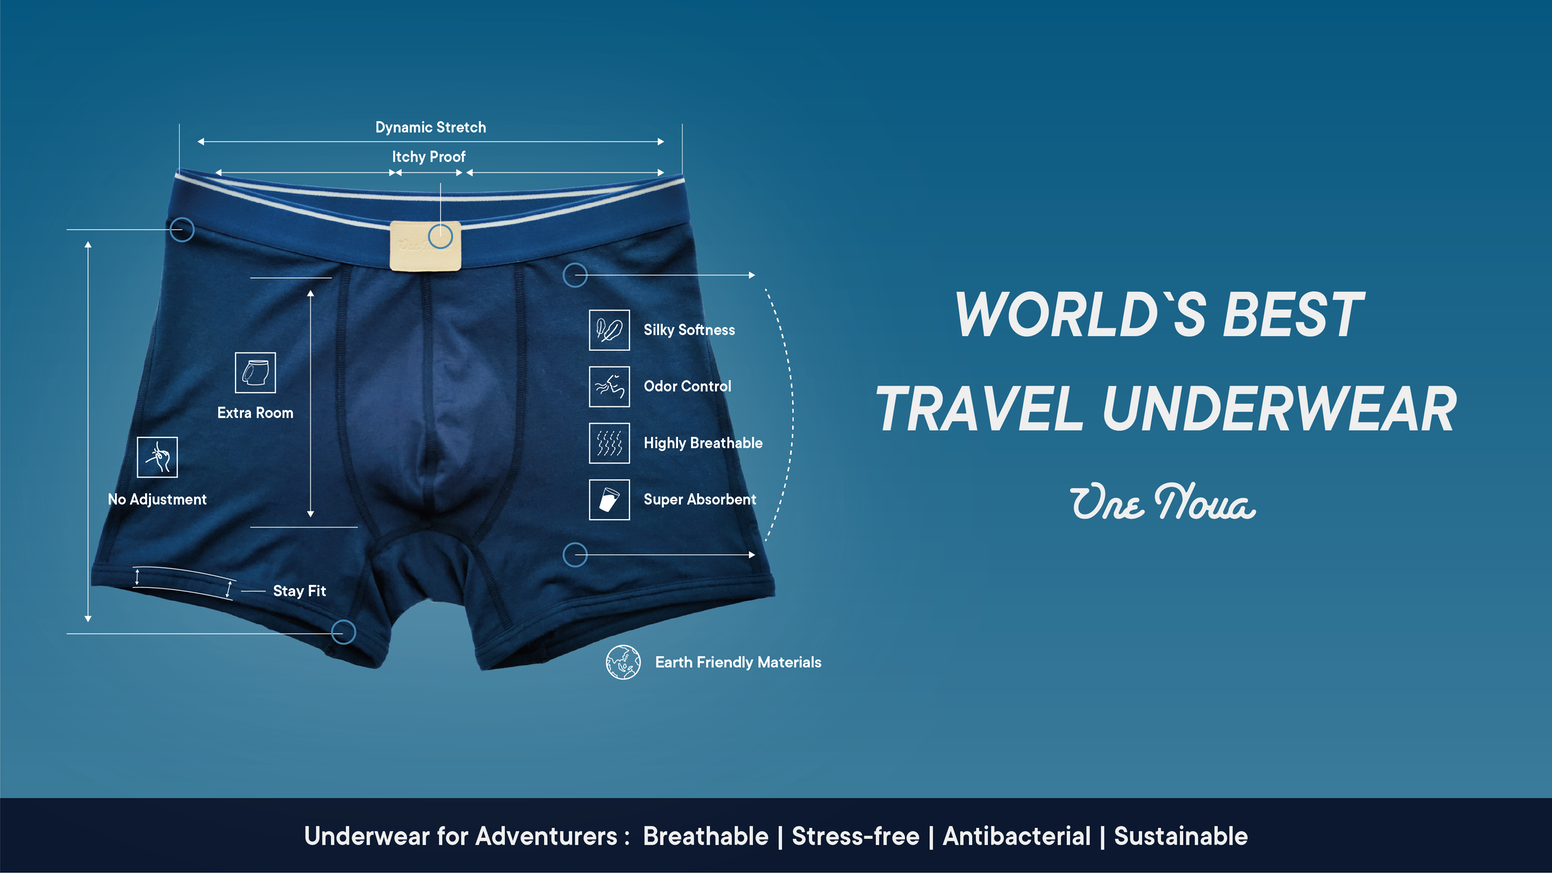 Underwear so comfortable, you'll forget you're wearing one. Breathable | Stress-free | Antibacterial | Sustainable